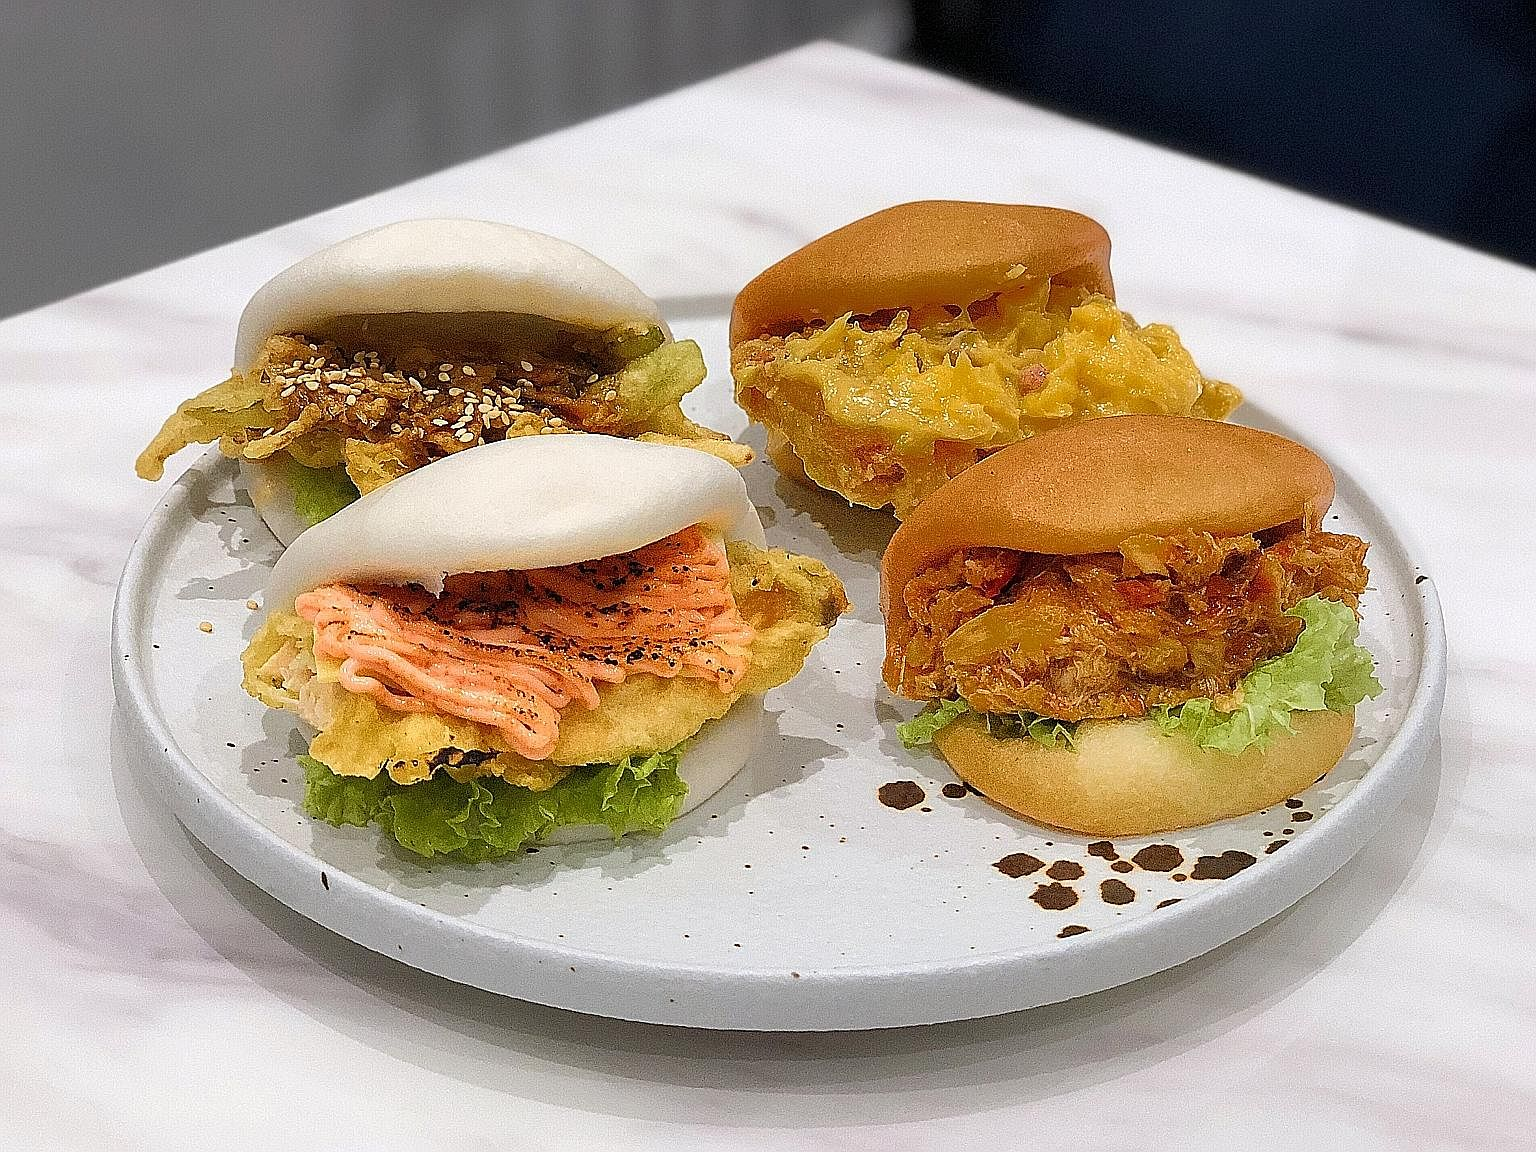 THE BAO MAKERS CAFE & BAKERY